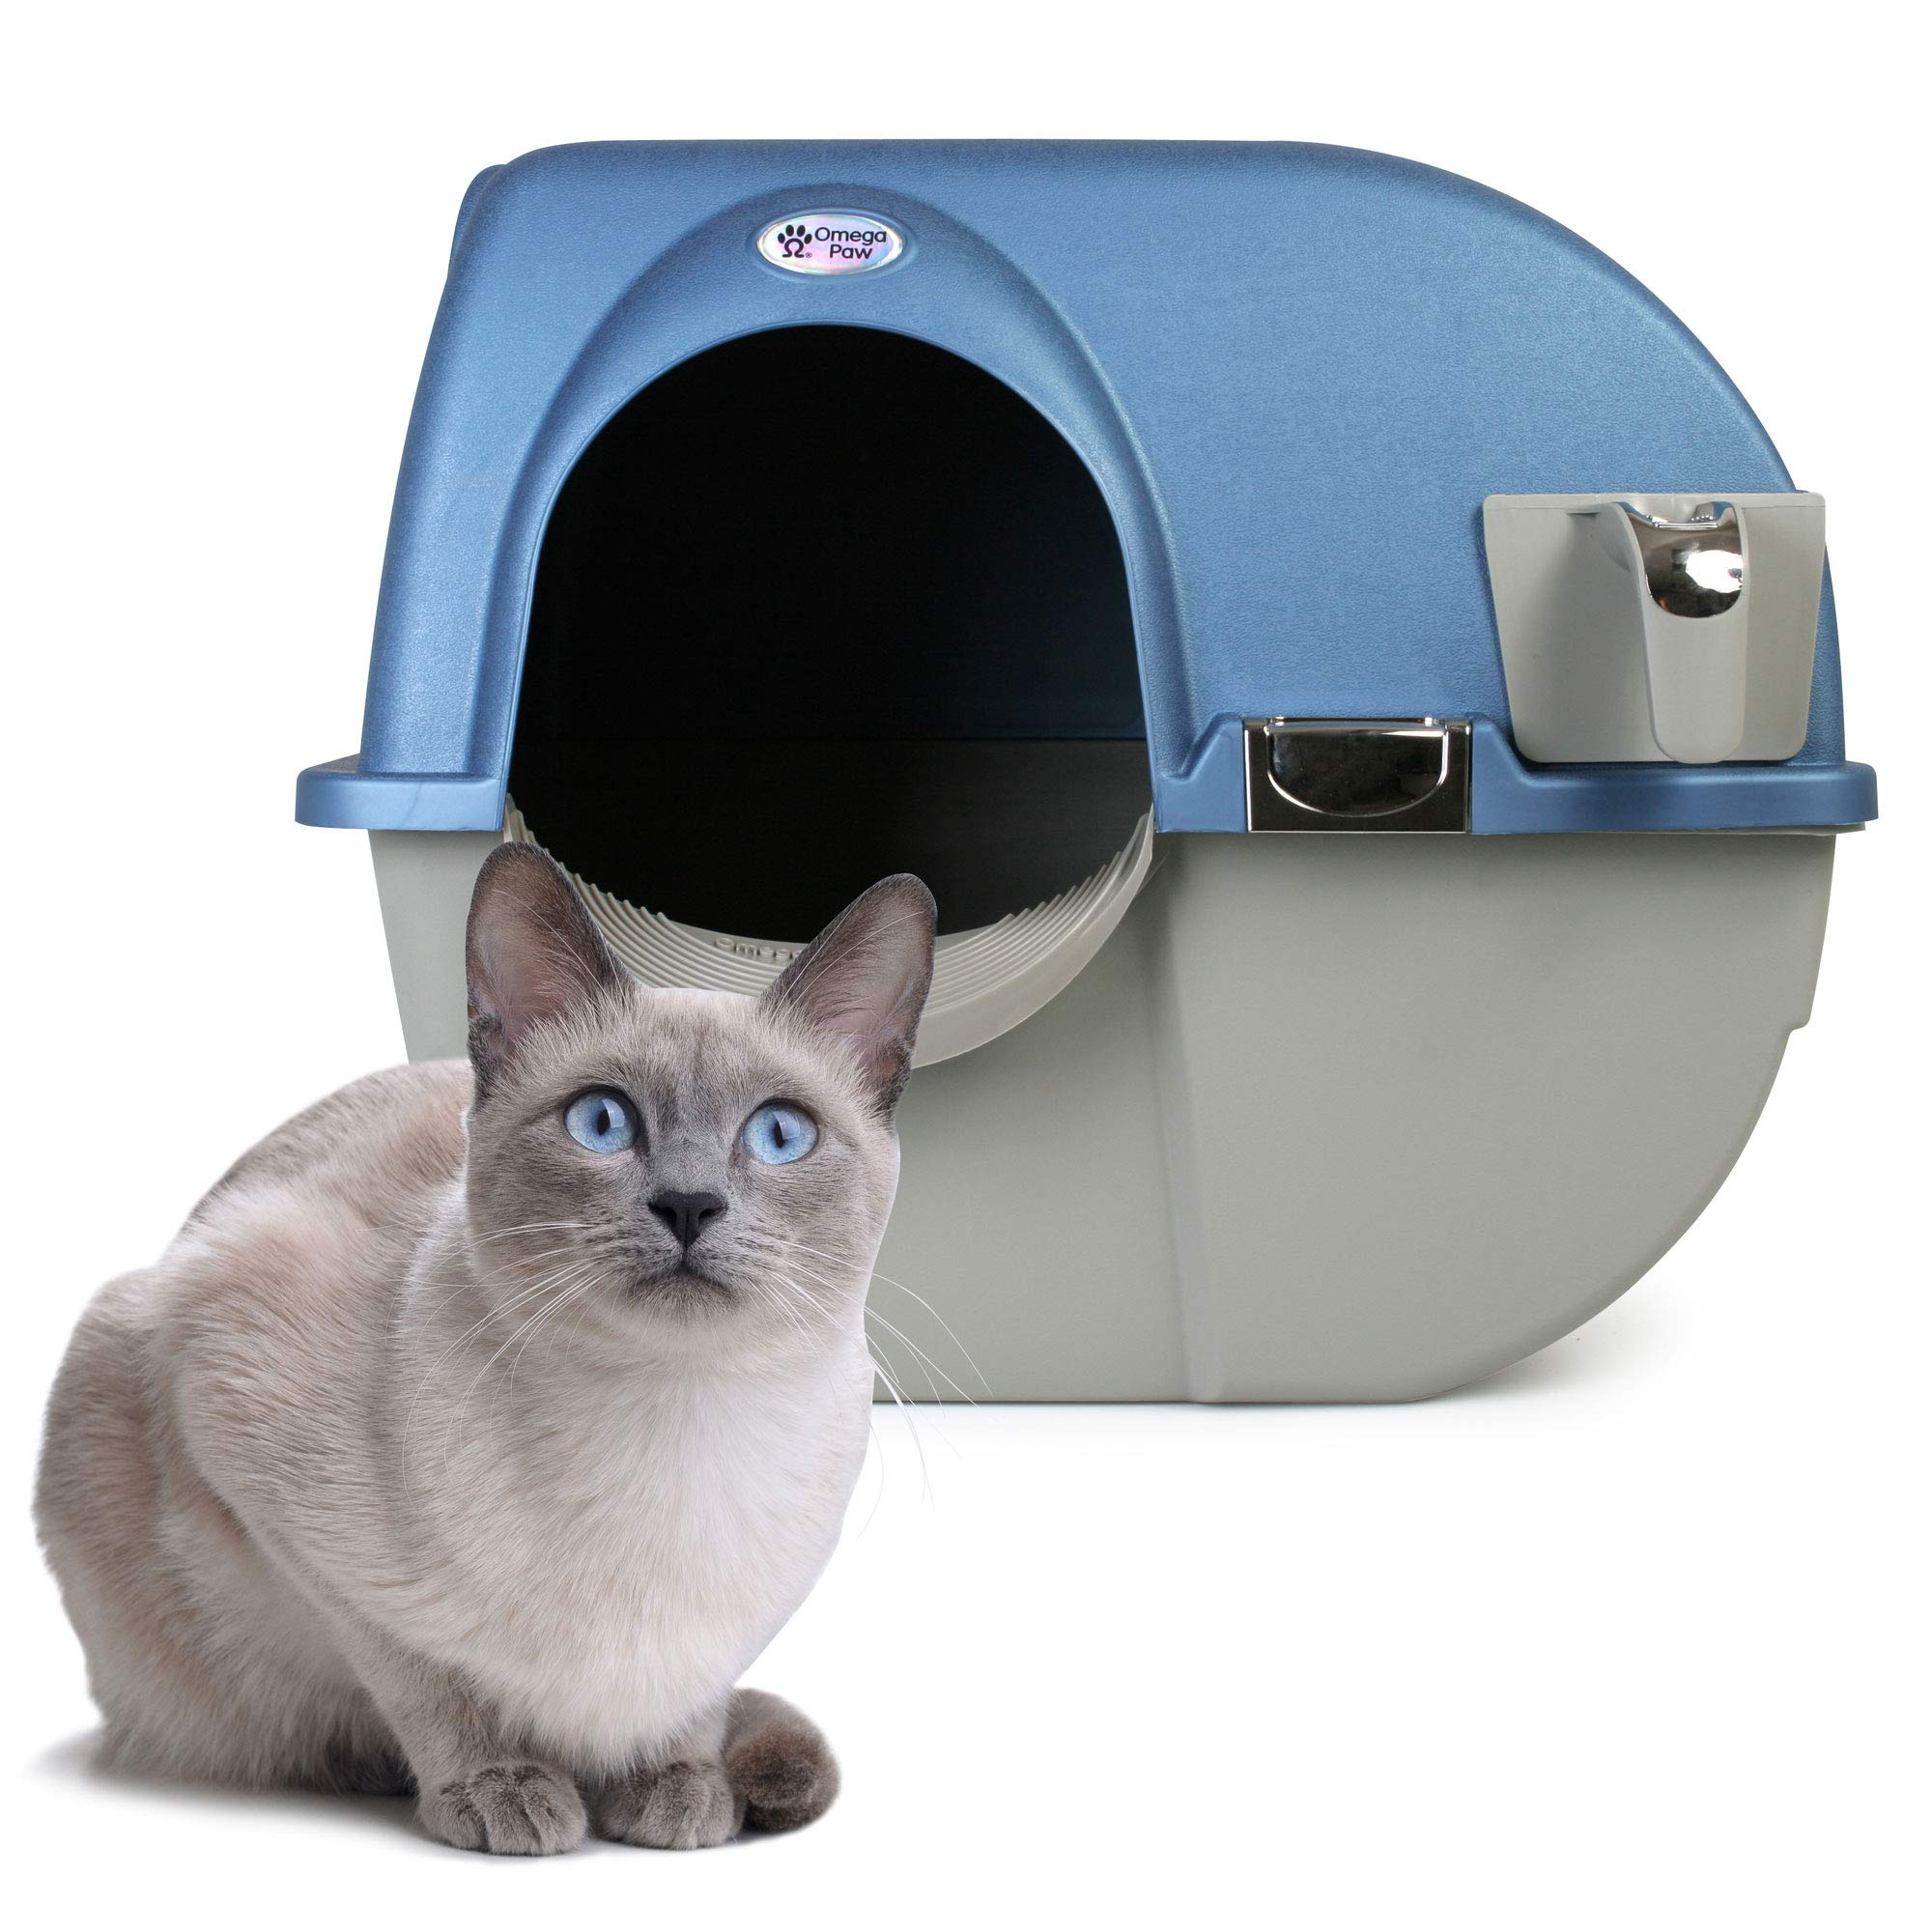 Omega Paw PR-RA15-1 Roll N Clean Self Separating Self Cleaning Litter Box, Blue by Omega Paw